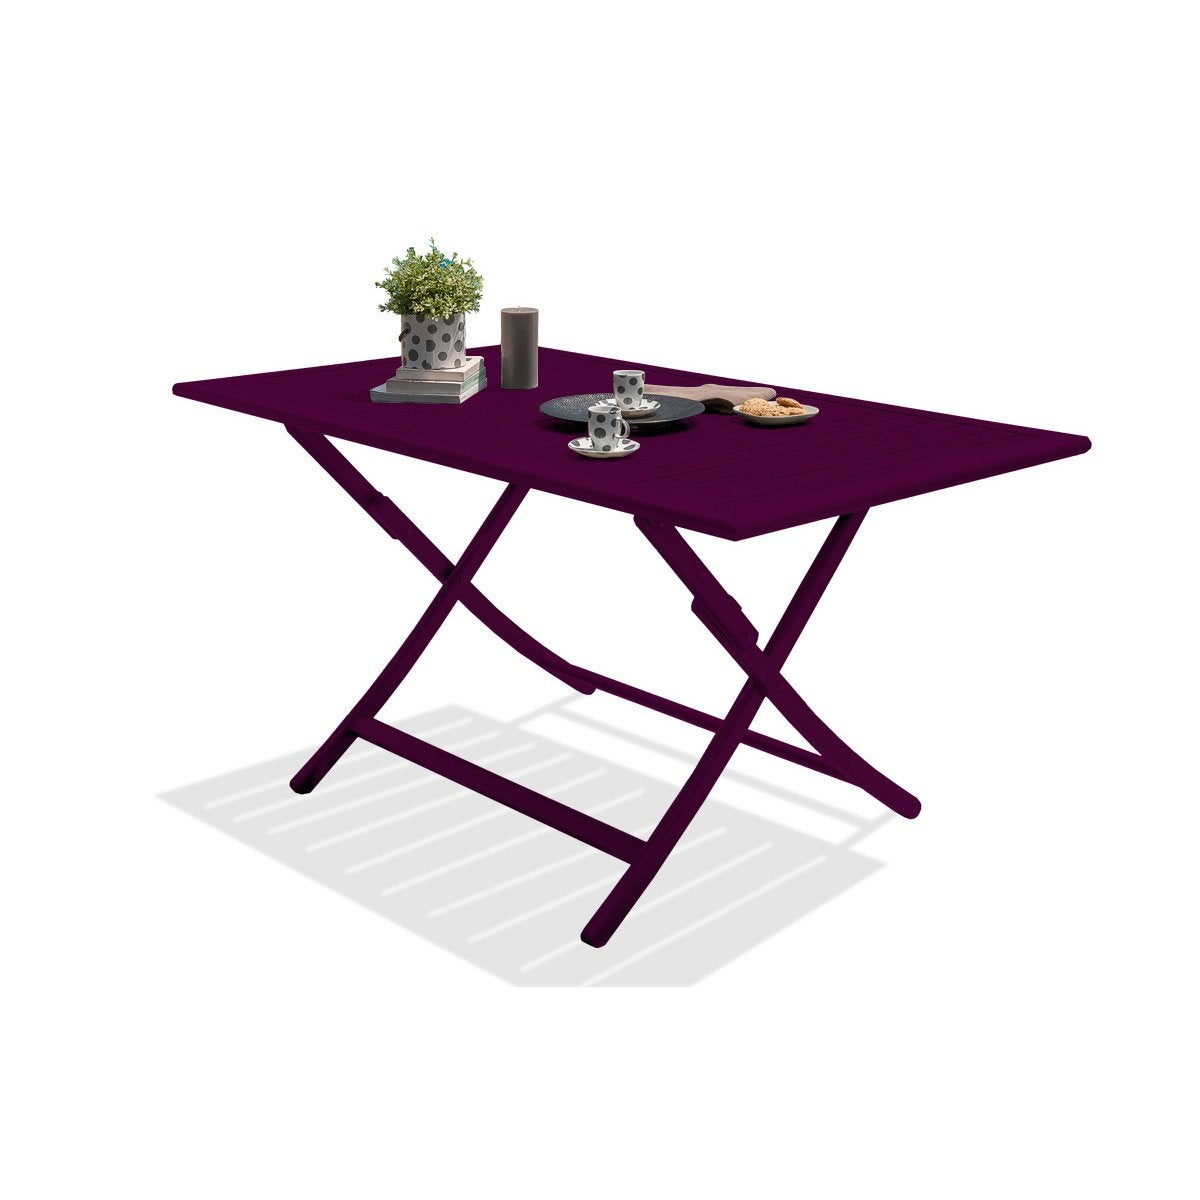 Table Chaise De Jardin Nouveau Table De Jardin De Repas Marius Rectangulaire Aubergine 4 6 Of 30 Charmant Table Chaise De Jardin